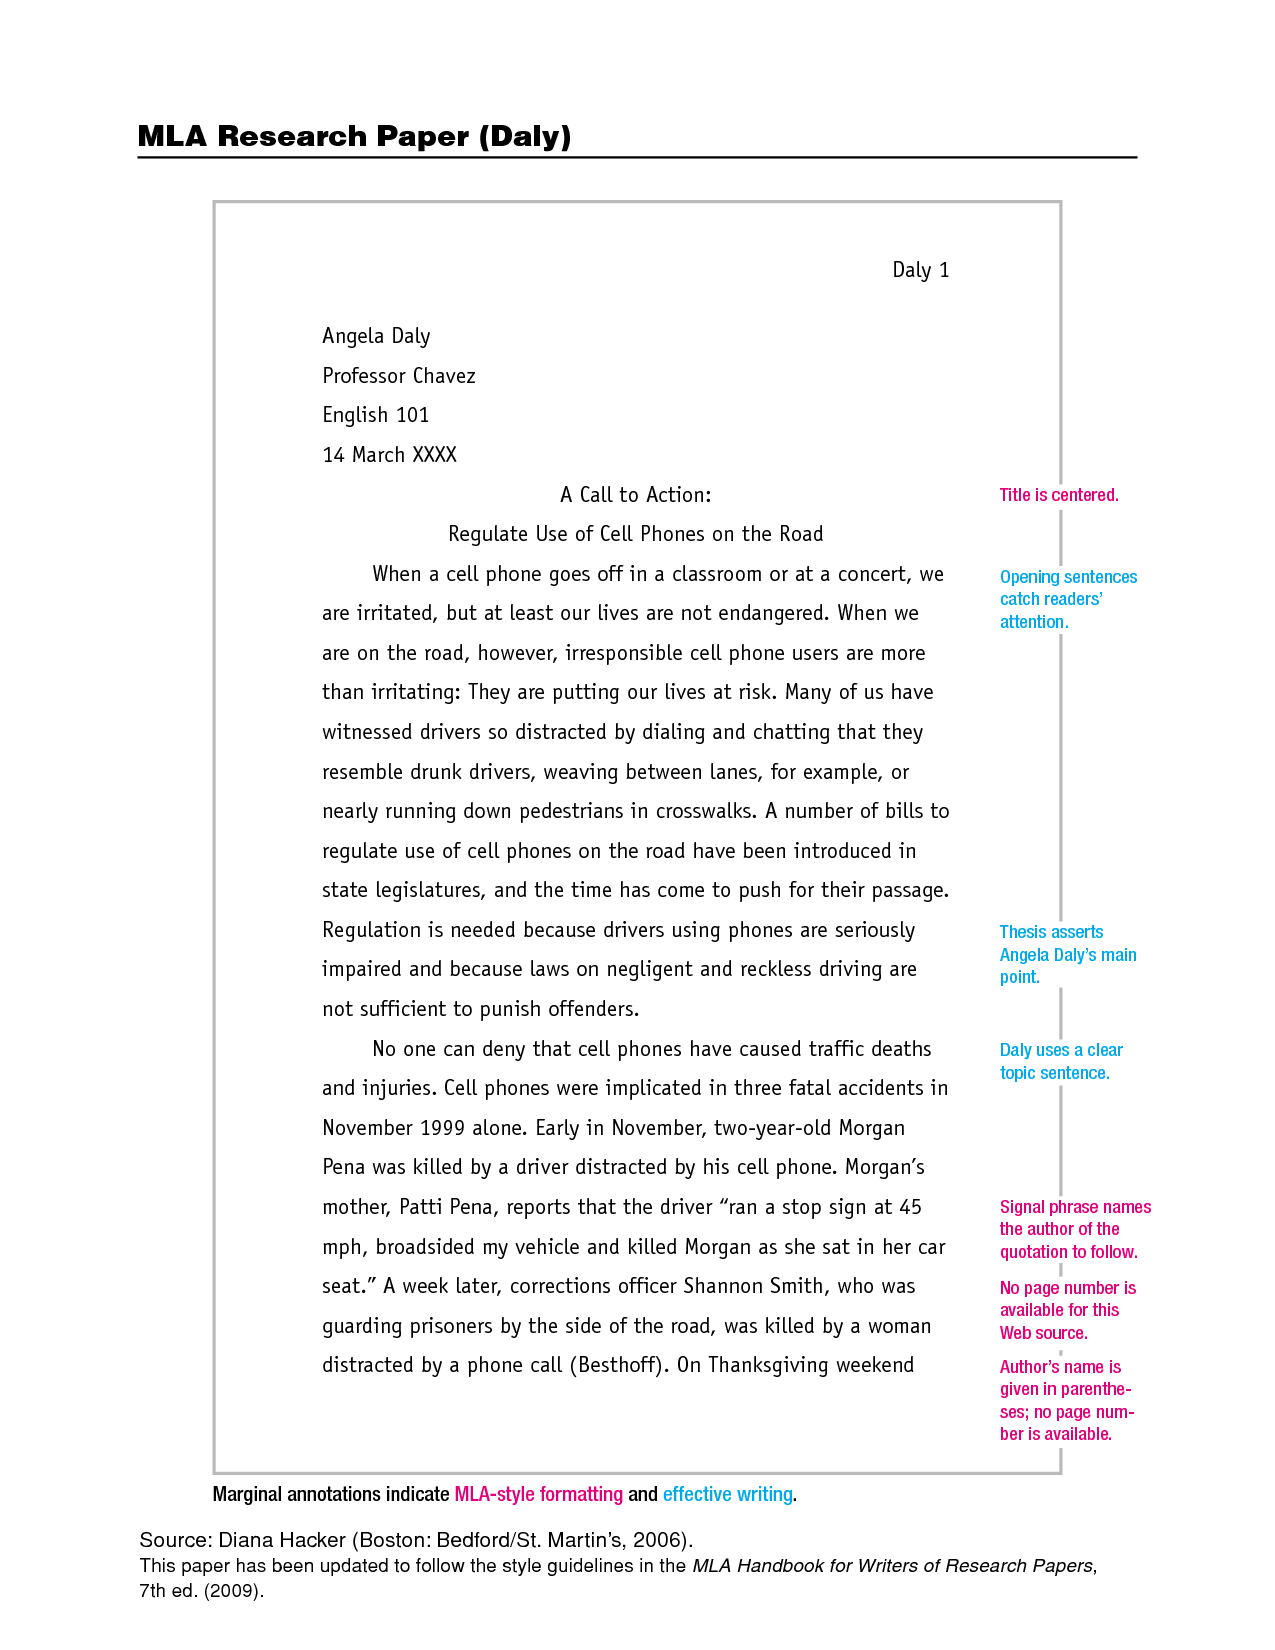 007 Mla Format Research Paper Section Breathtaking Headings Heading Spacing Full